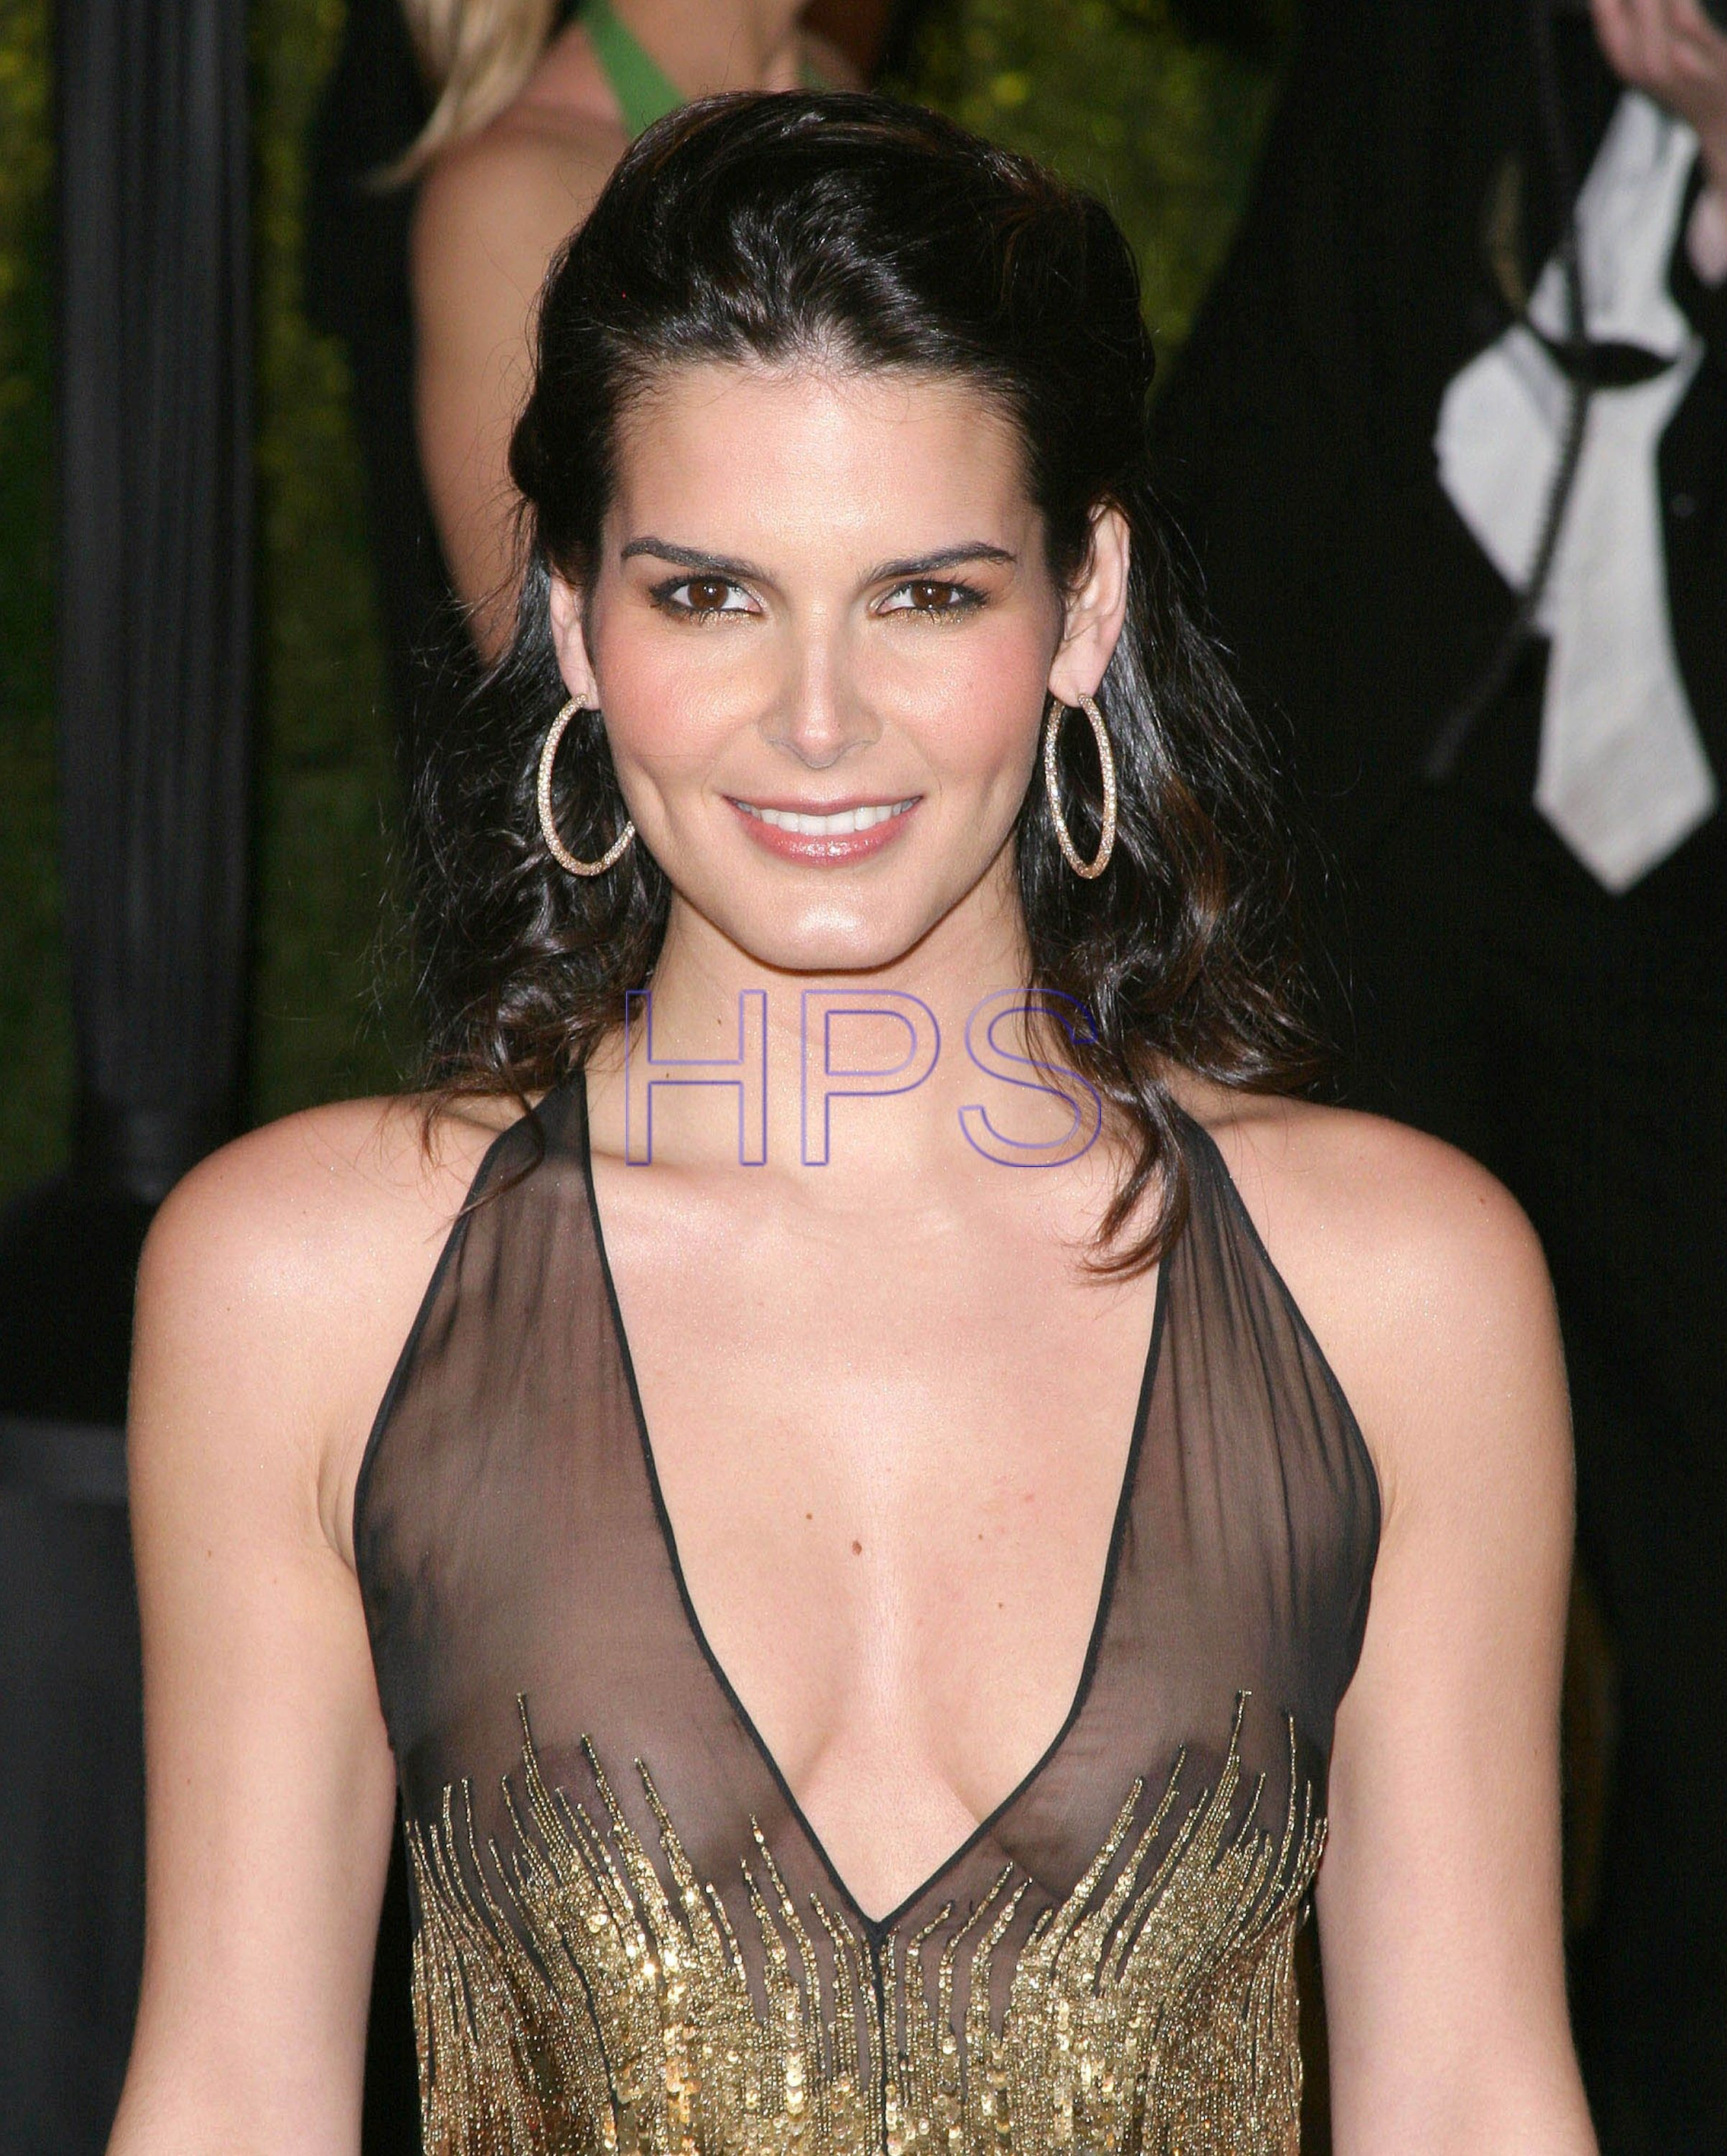 Angie Dickinson Oops images of angie harmon | oops done it again | pinterest